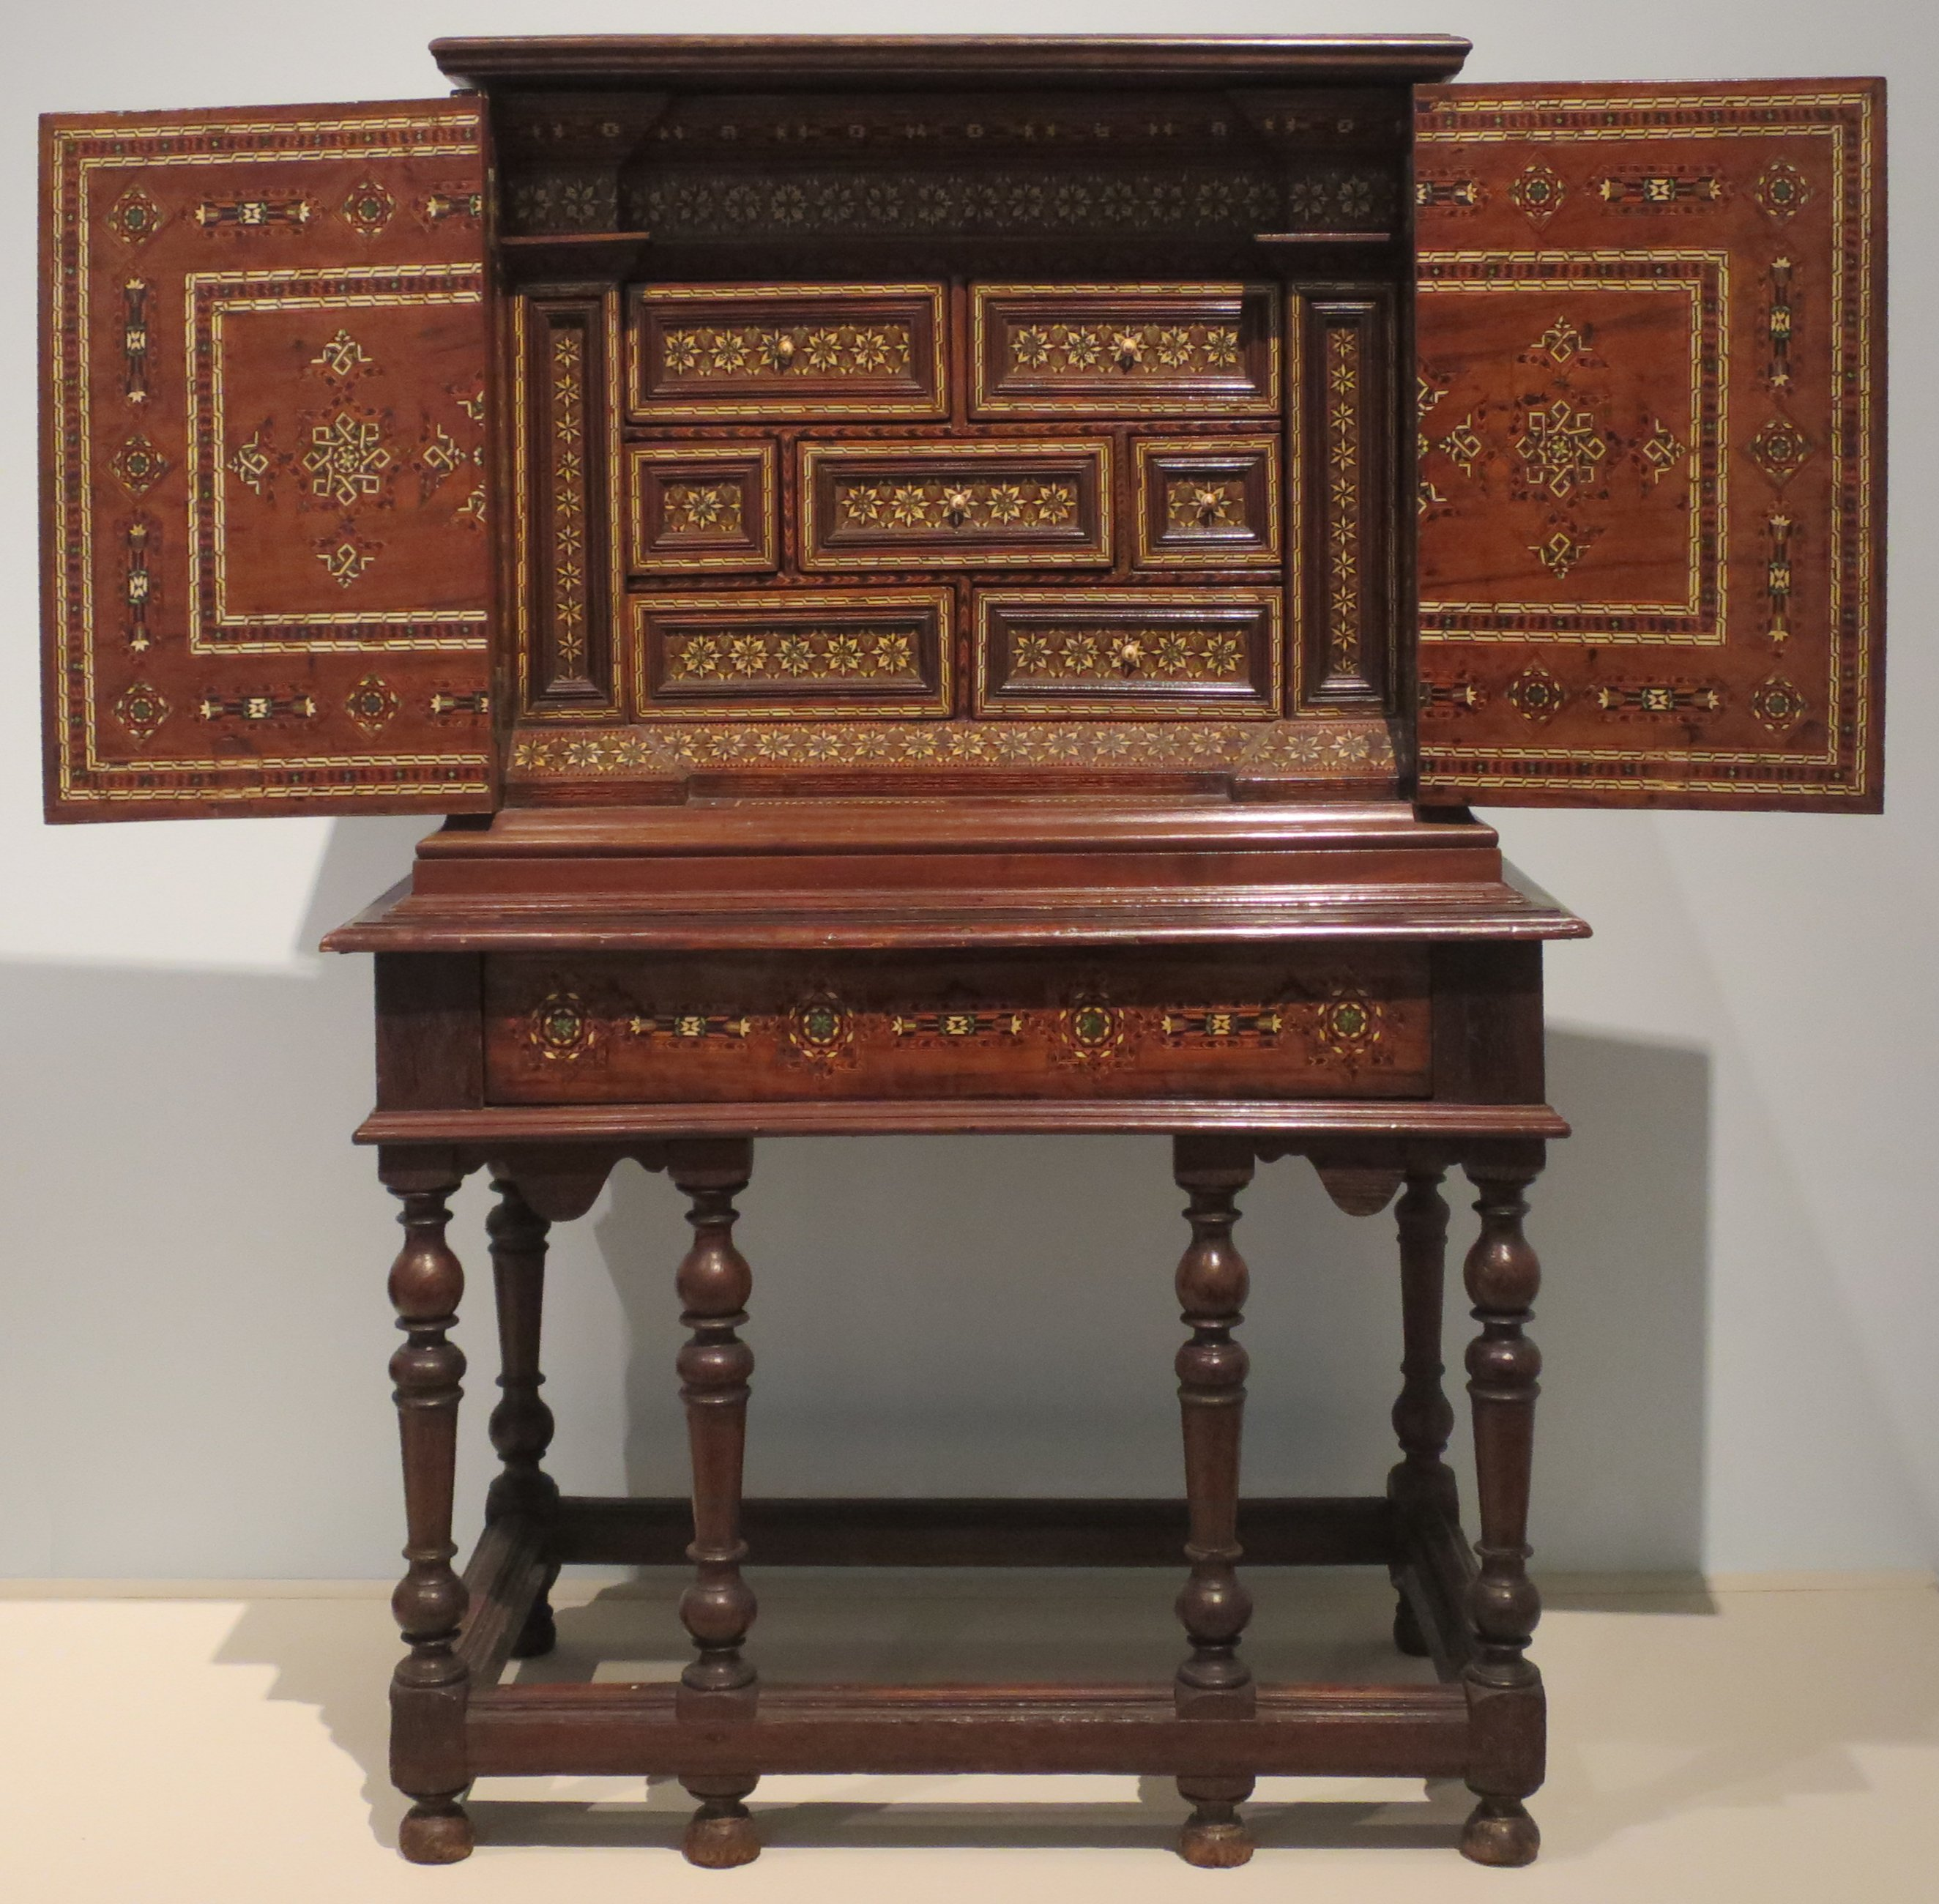 File:Cabinet From Spain, C. 17th Century, Wood, Ivory And Metal